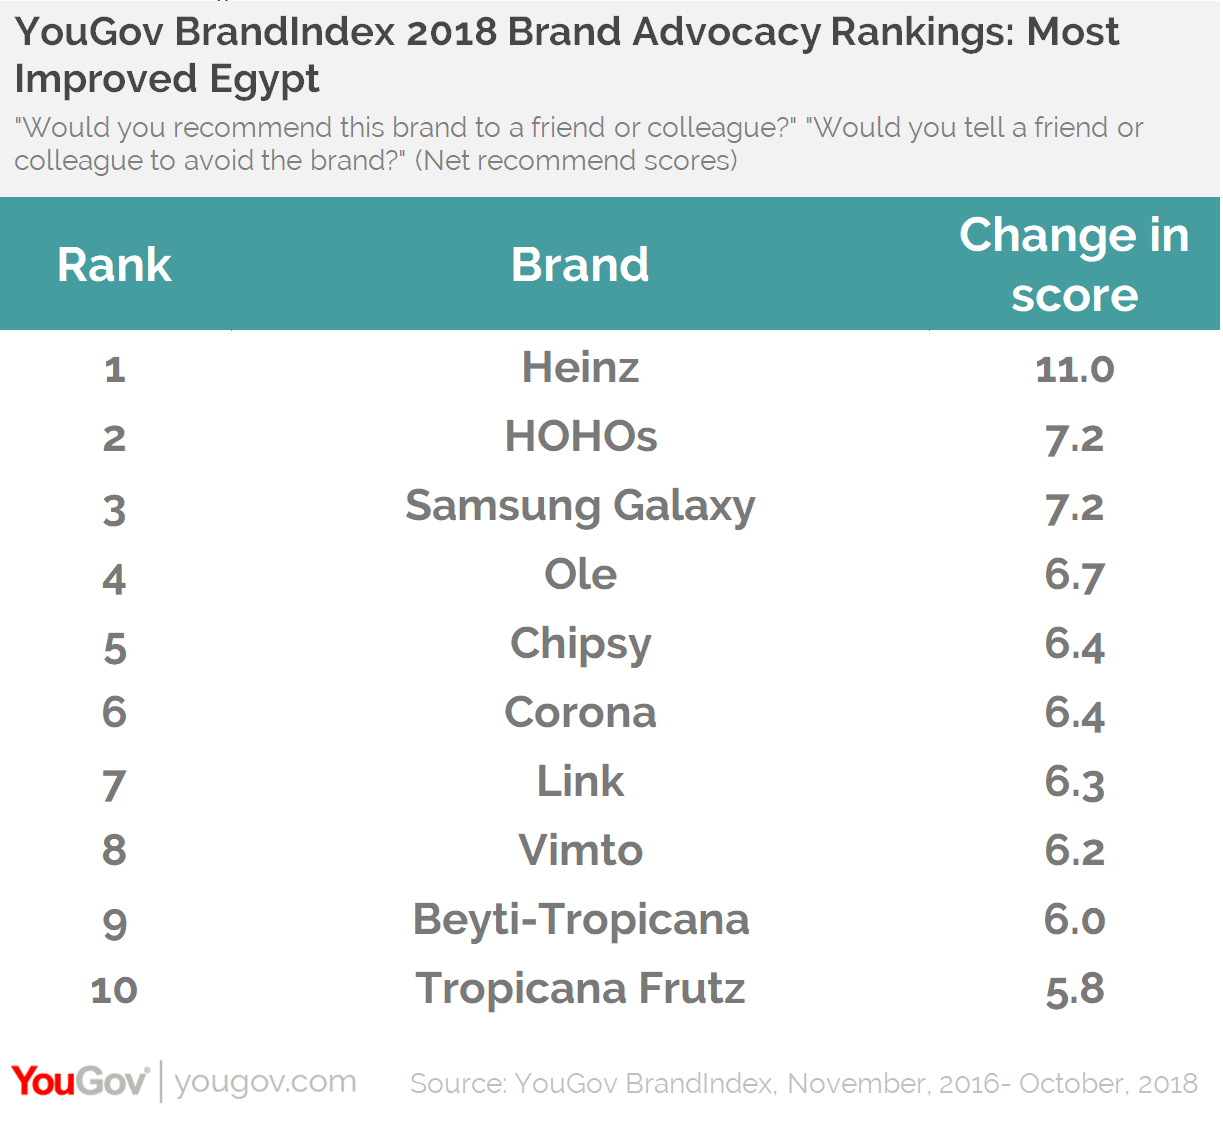 YouGov BrandIndex 2018 Brand Advocacy Rankings:Most improved Egypt